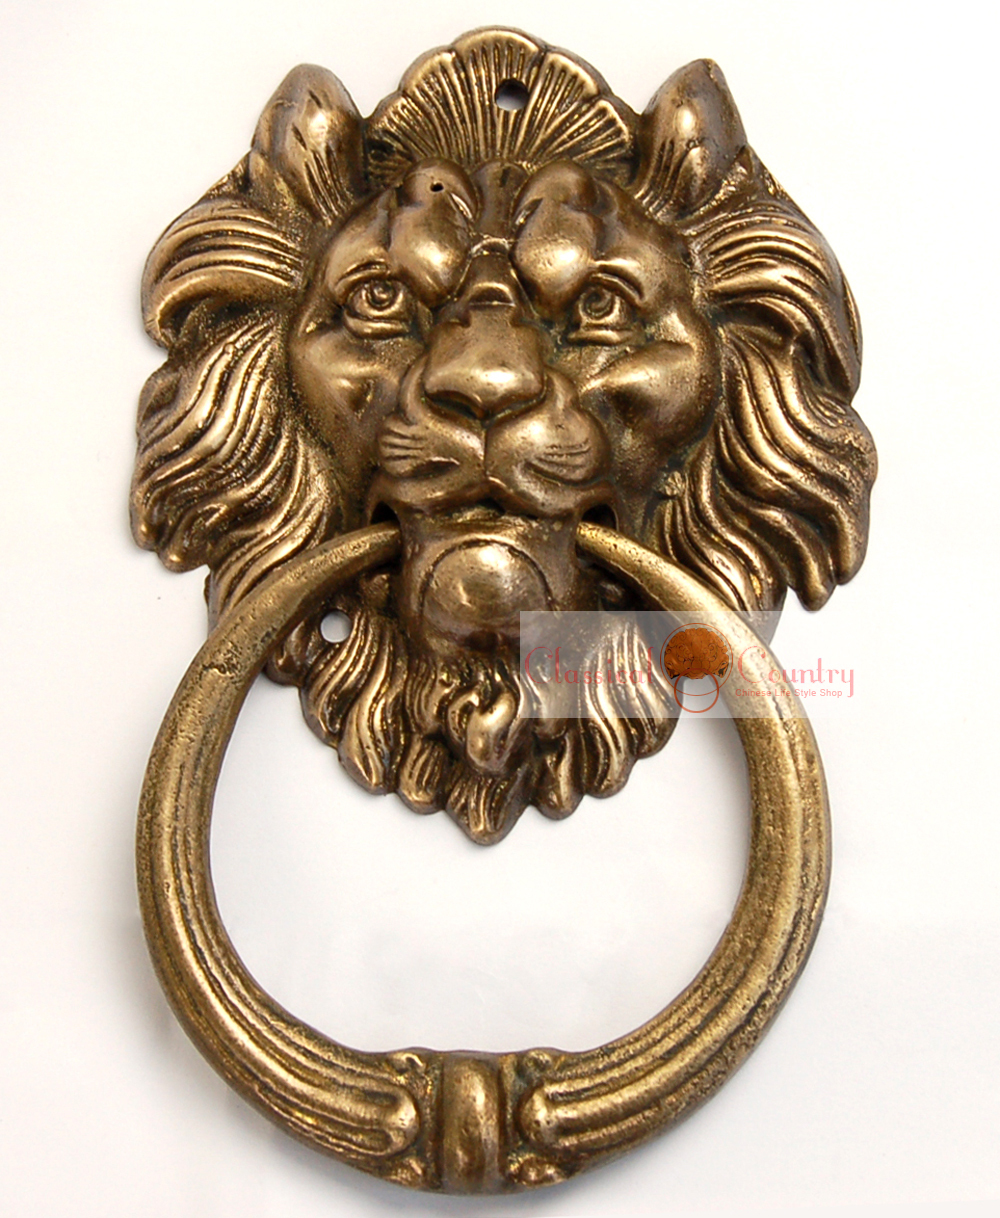 Brass pull door handles Long Lion Gate Knocker Brass Handle Chinese Brass Hardware Door Ring Pull Copper Brass Pull Knocker 728 Artfirecom Lion Gate Knocker Brass Handle Chinese Brass Hardware Door Ring Pull